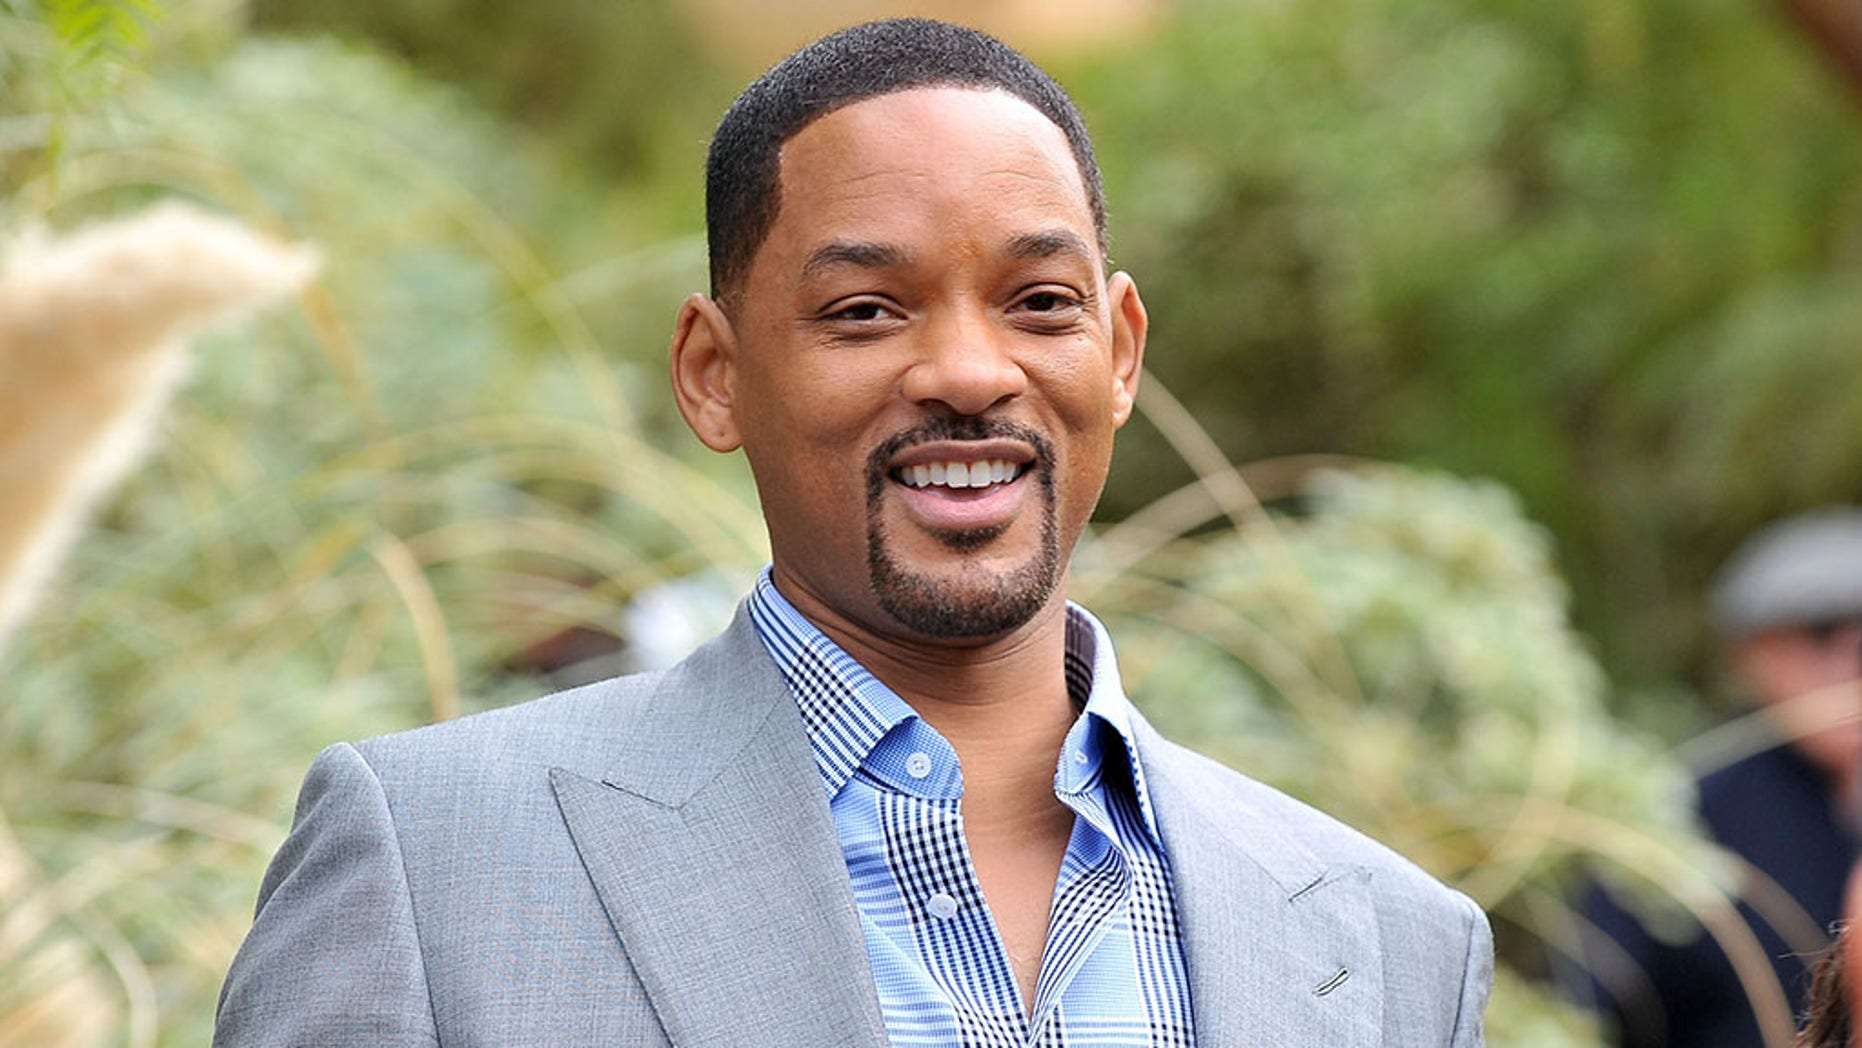 """In the upcoming, live-action adaptation of """"Aladdin,"""" Will Smith steps into the role of the beloved Genie, and in an interview with Entertainment Weekly, he discussed the task he faced in taking on a character originally played by Robin Williams."""